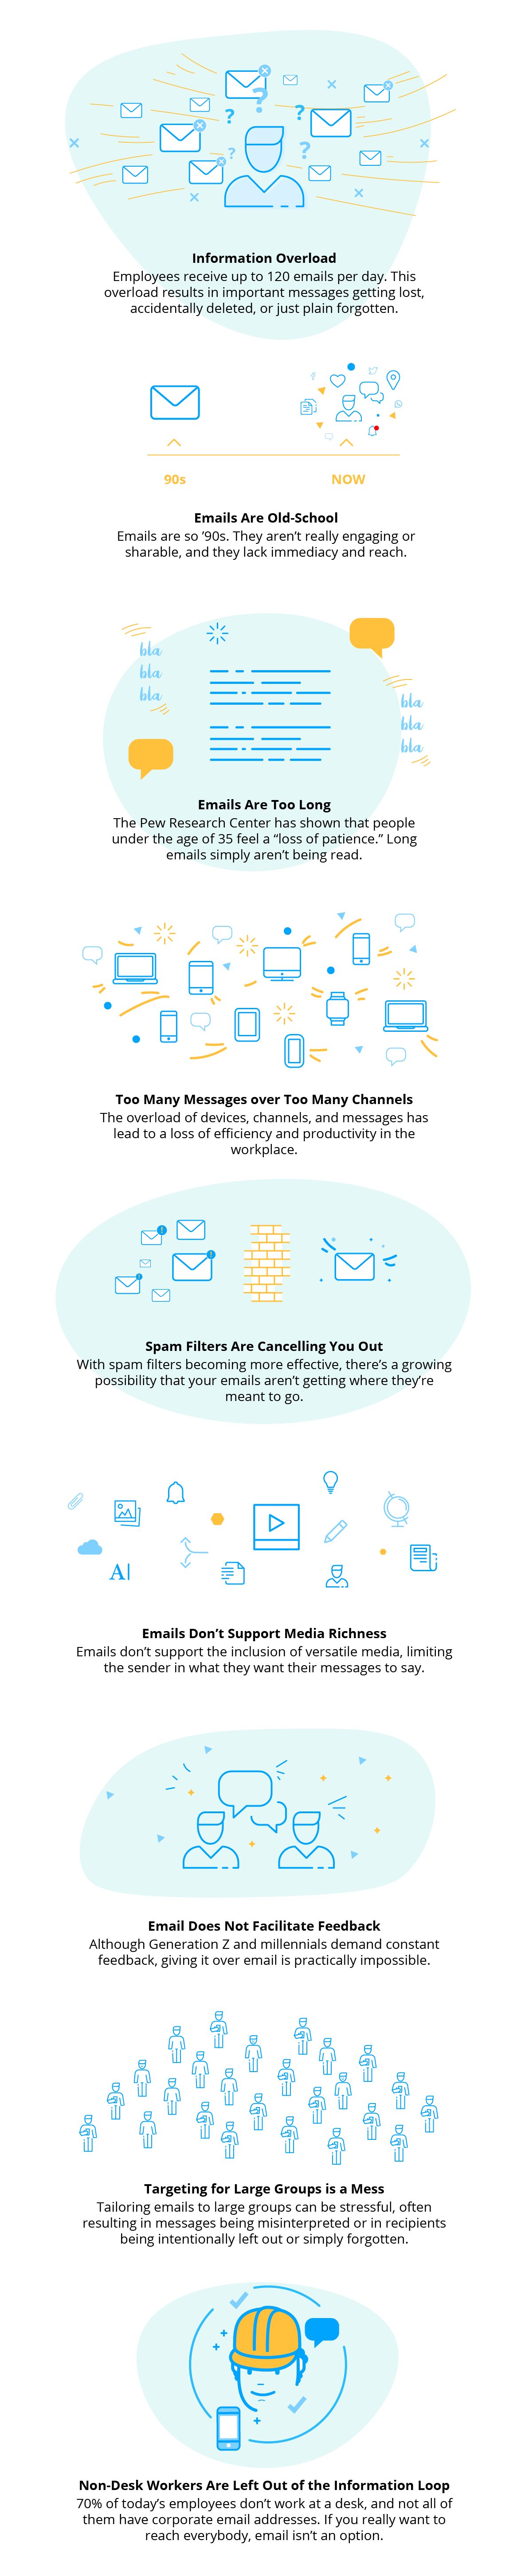 Why internal comms should not run over email